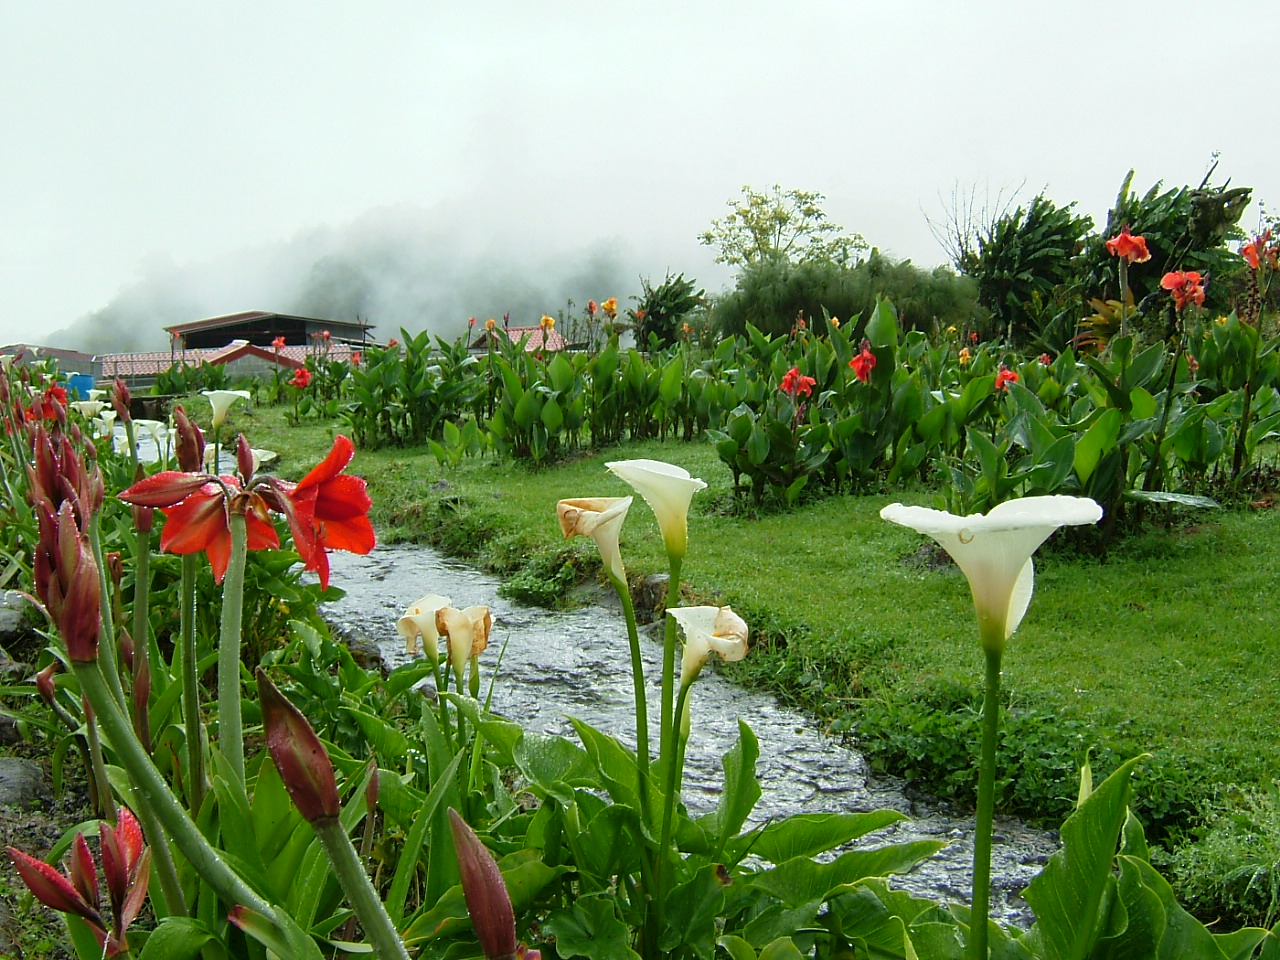 A Cloud Rainforest Garden